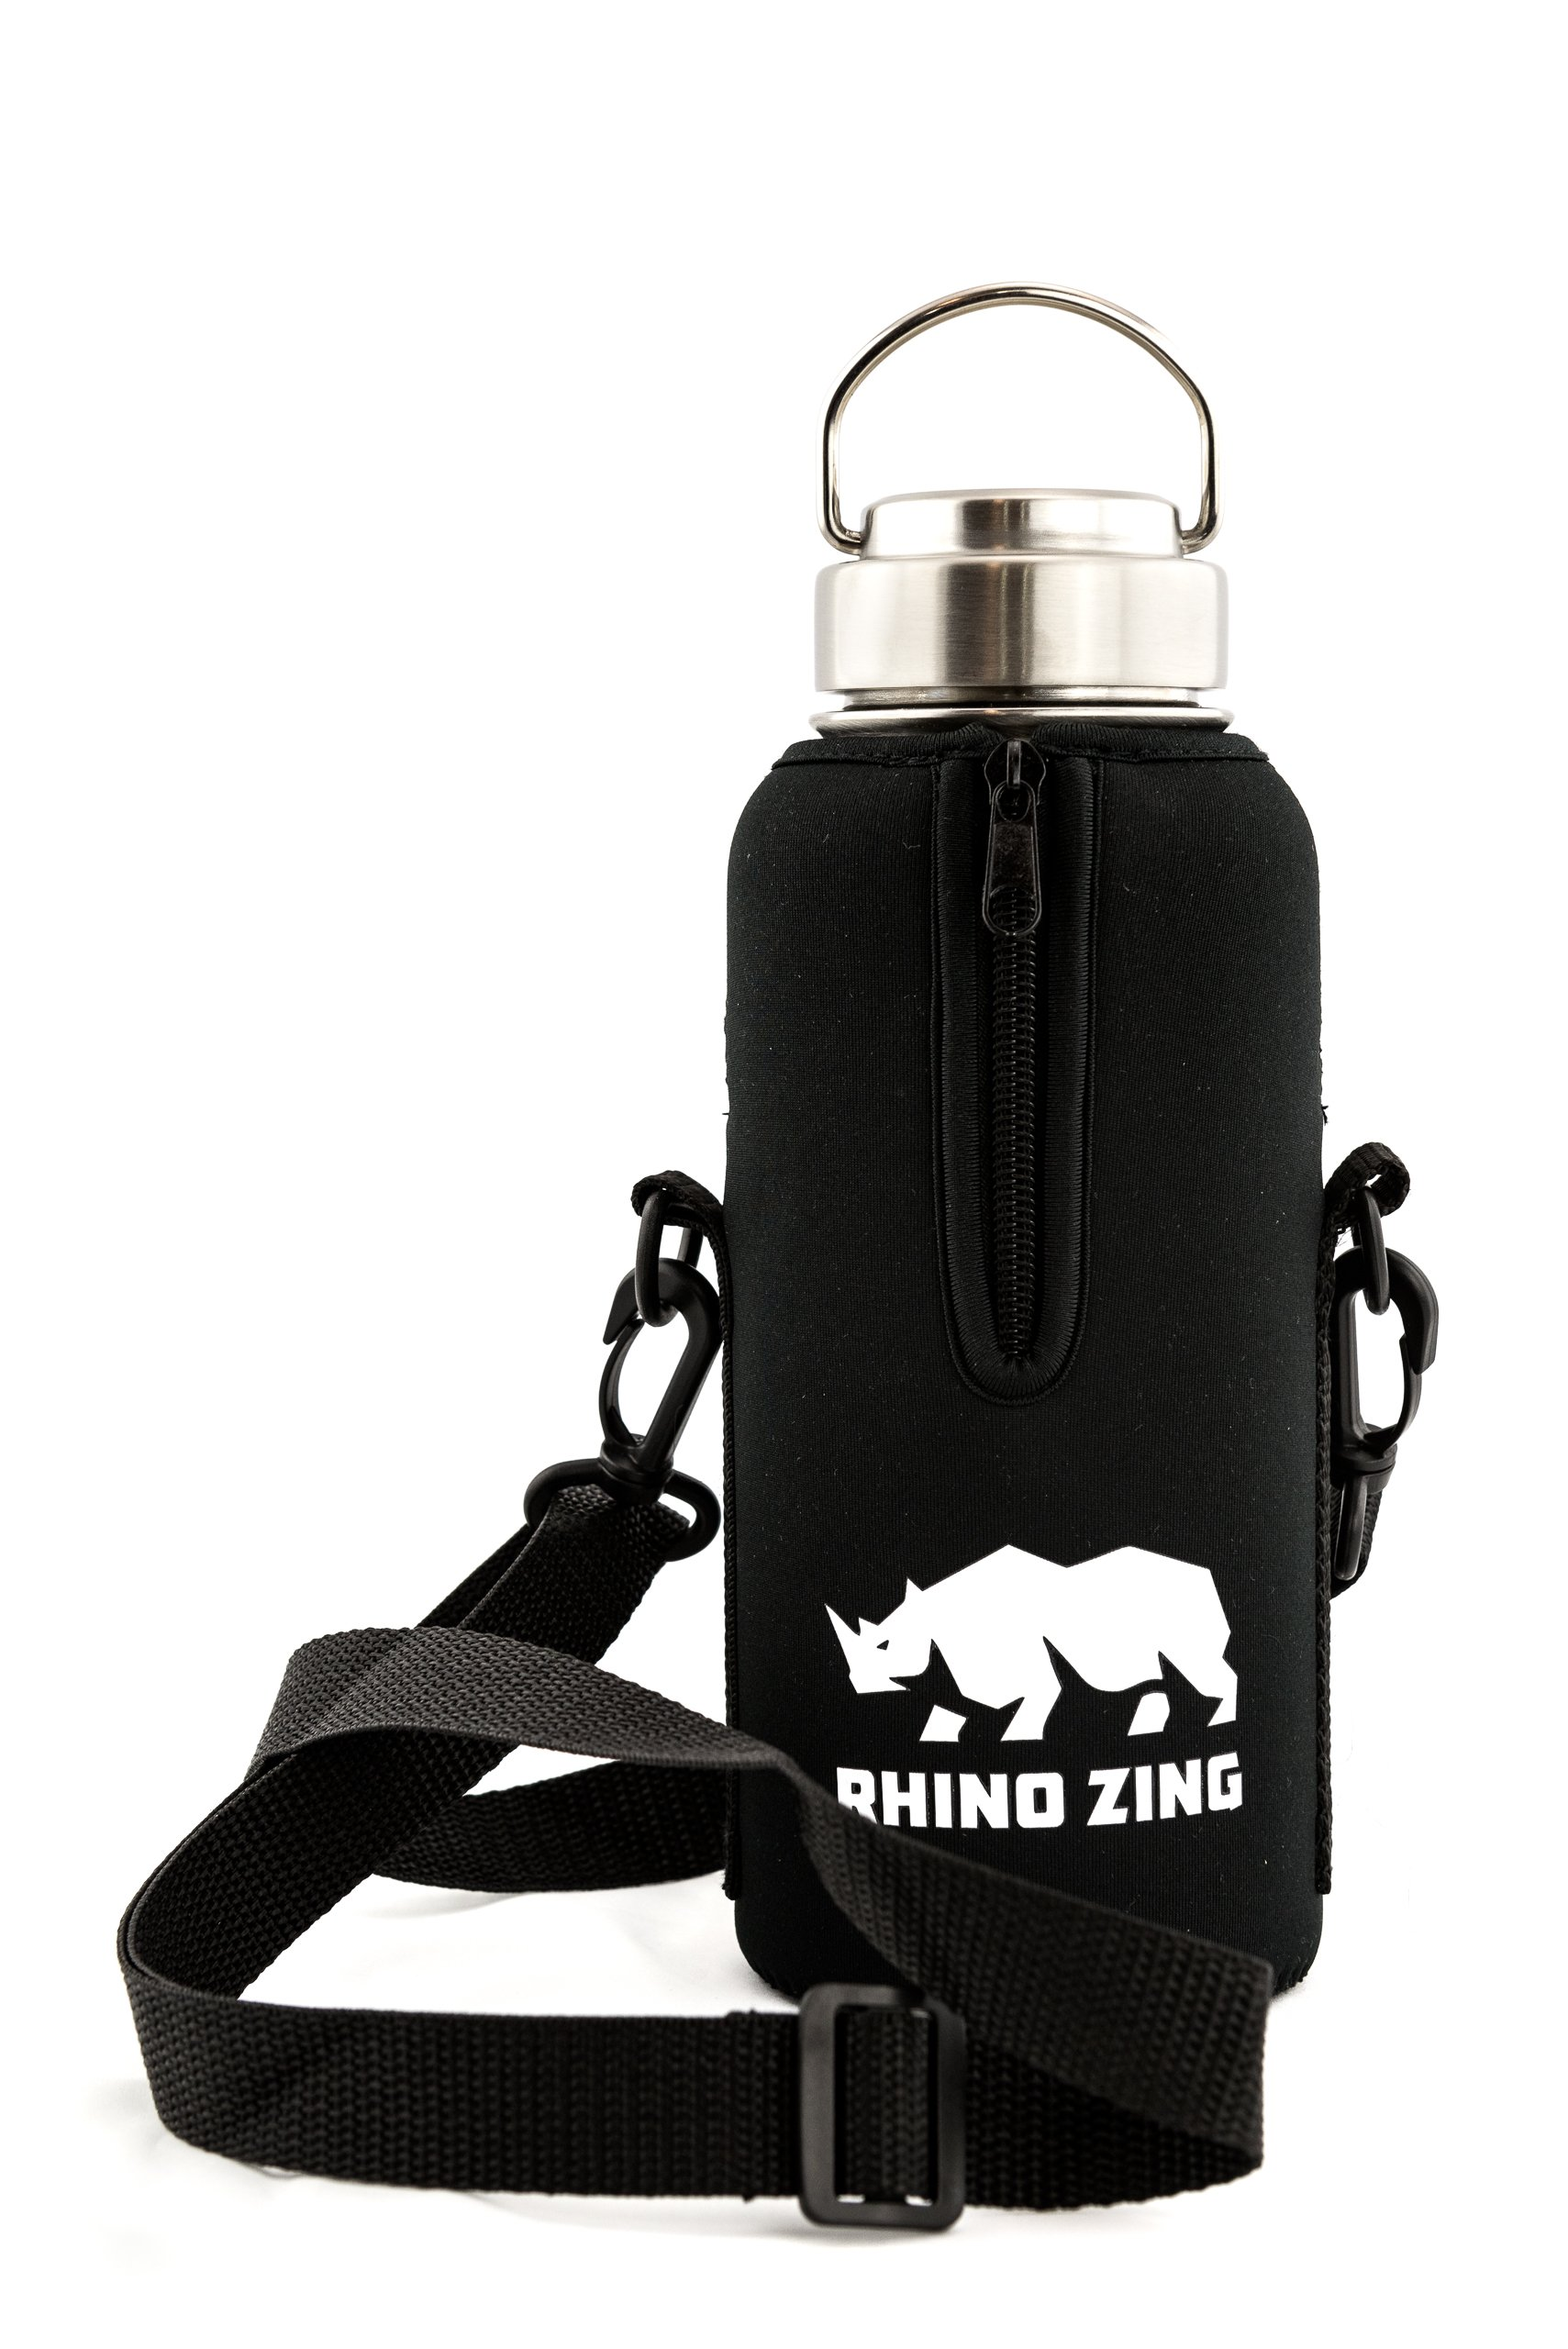 Rhino Zing 32-Ounce Beer Growler Stainless Steel Water Bottle, Sleeve/Pouch and Stainless Steel Lid. Insulated, Wide Mouth